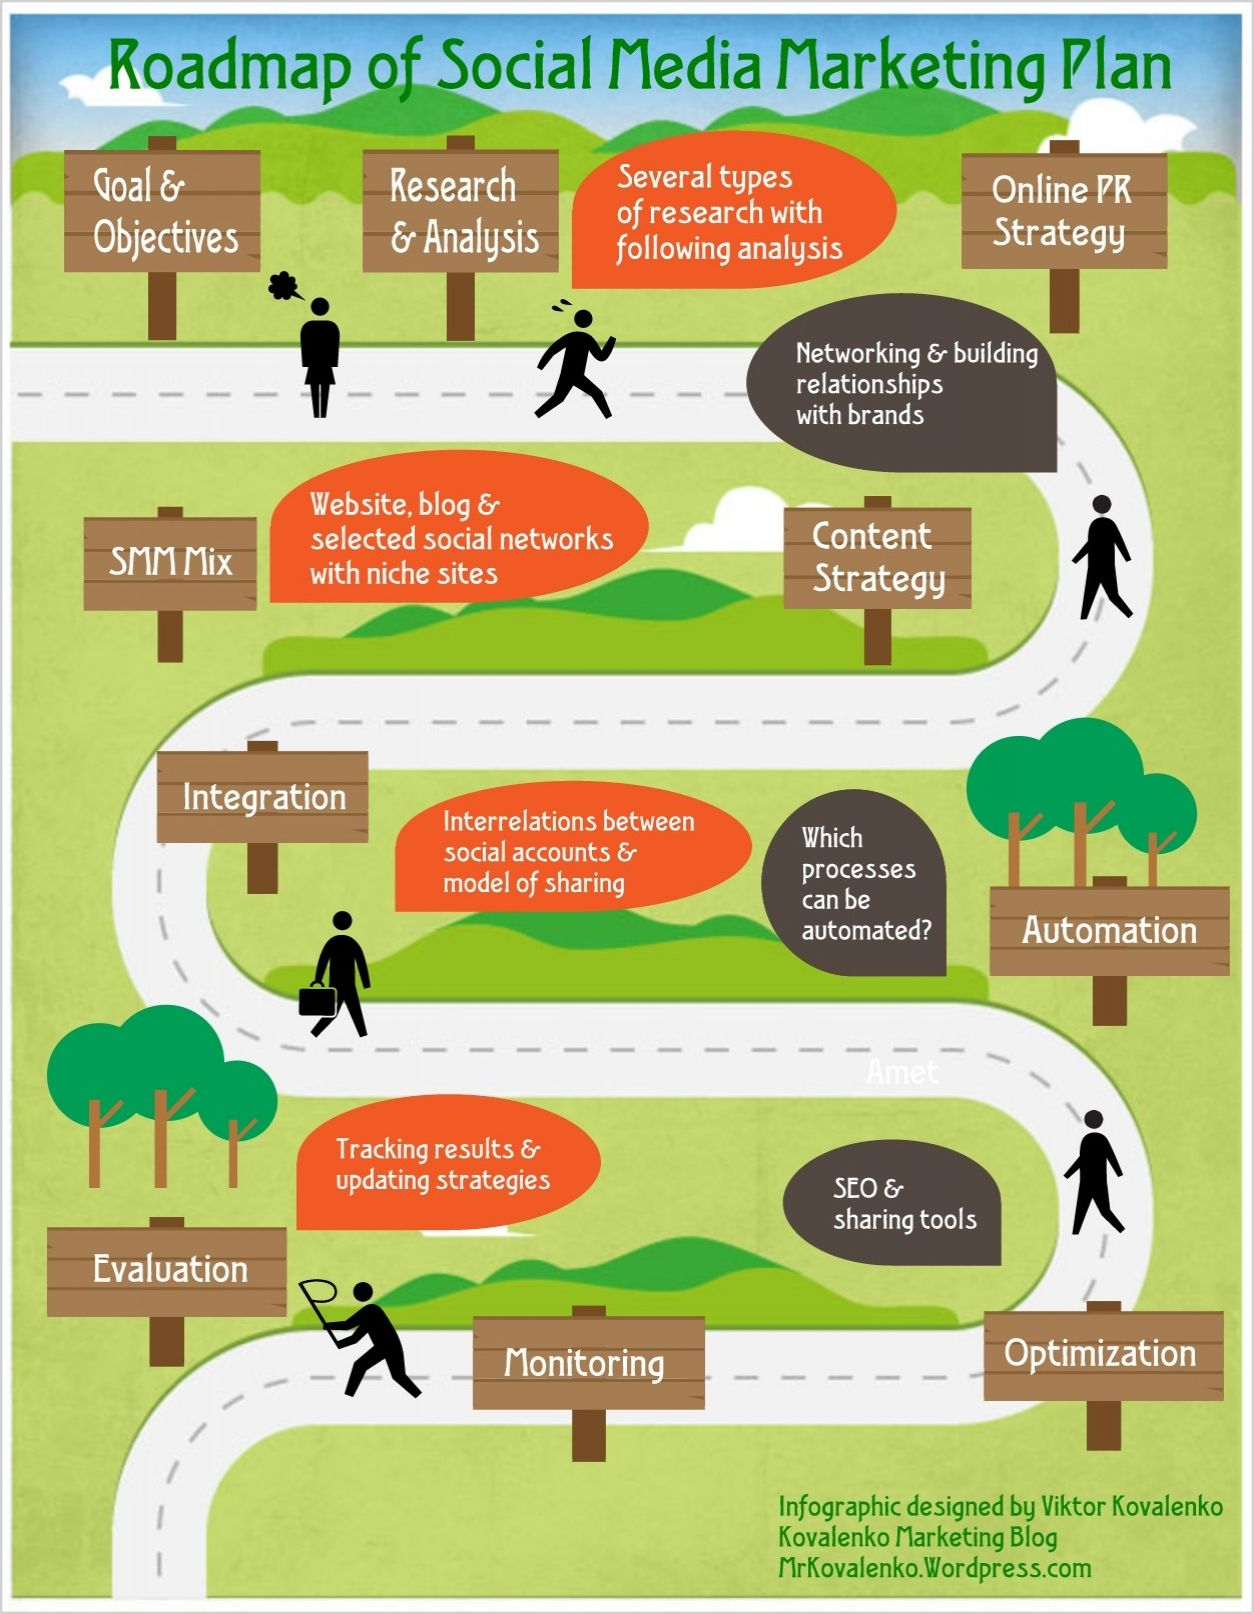 Infographic Roadmap For Social Media Marketing Plan Infographic